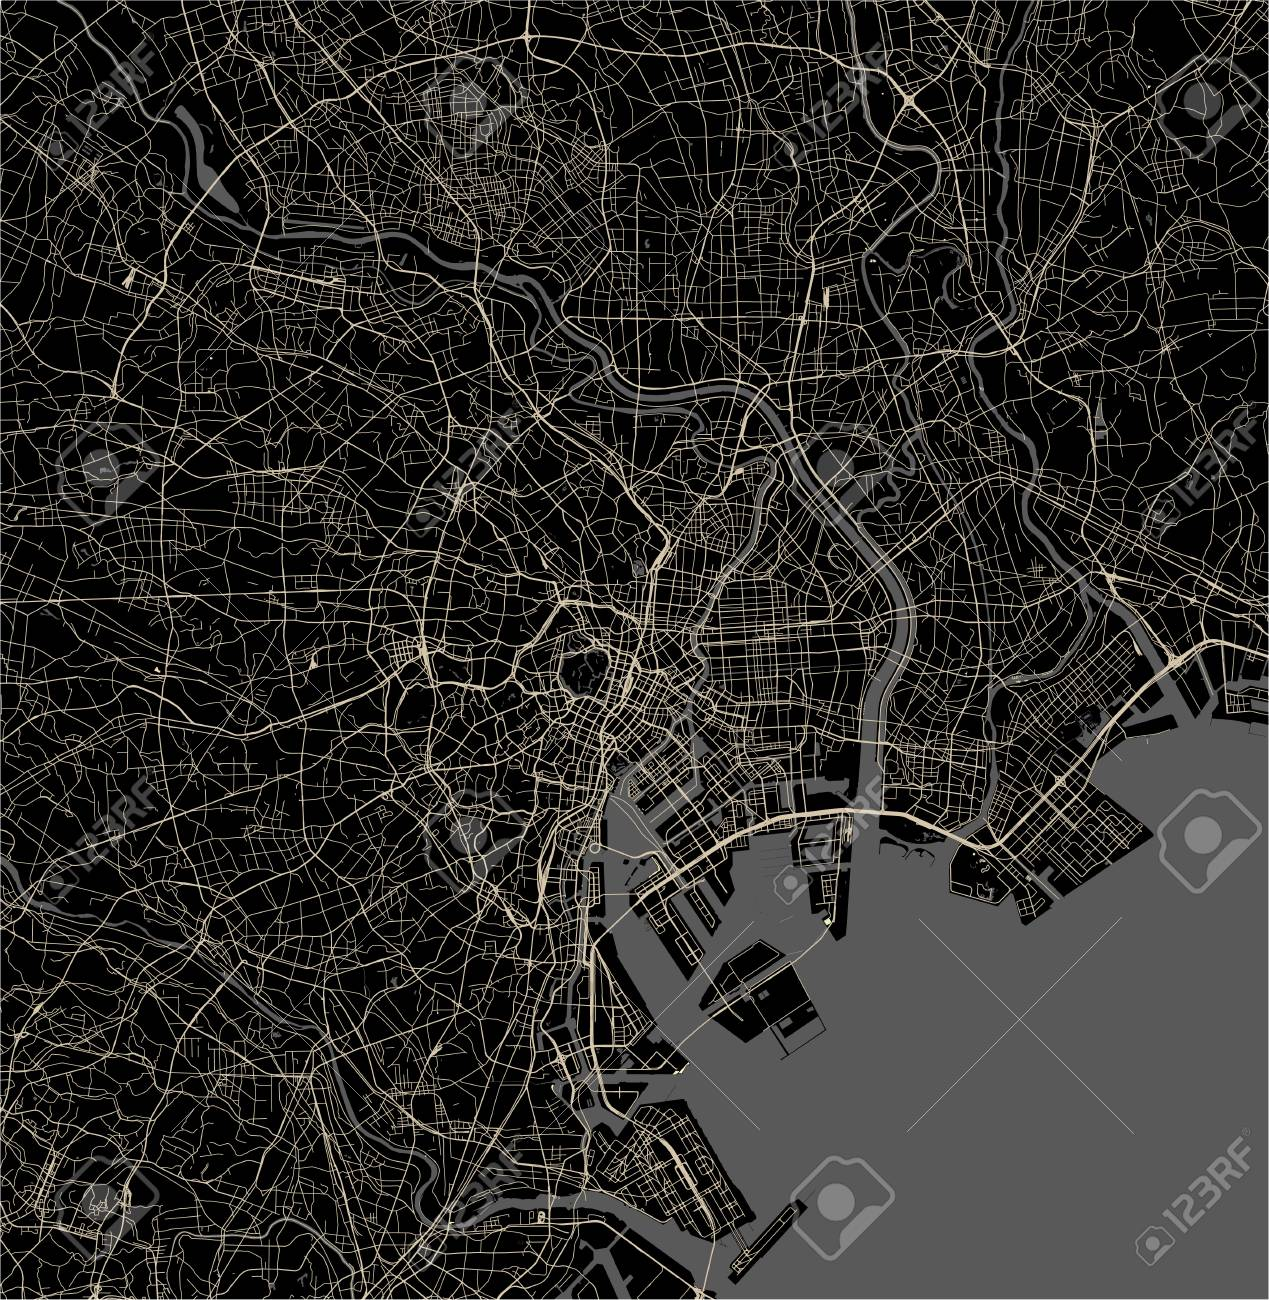 Picture of: Vector Map Of The City Of Tokyo Kanto Island Honshu Japan Royalty Free Cliparts Vectors And Stock Illustration Image 126772401